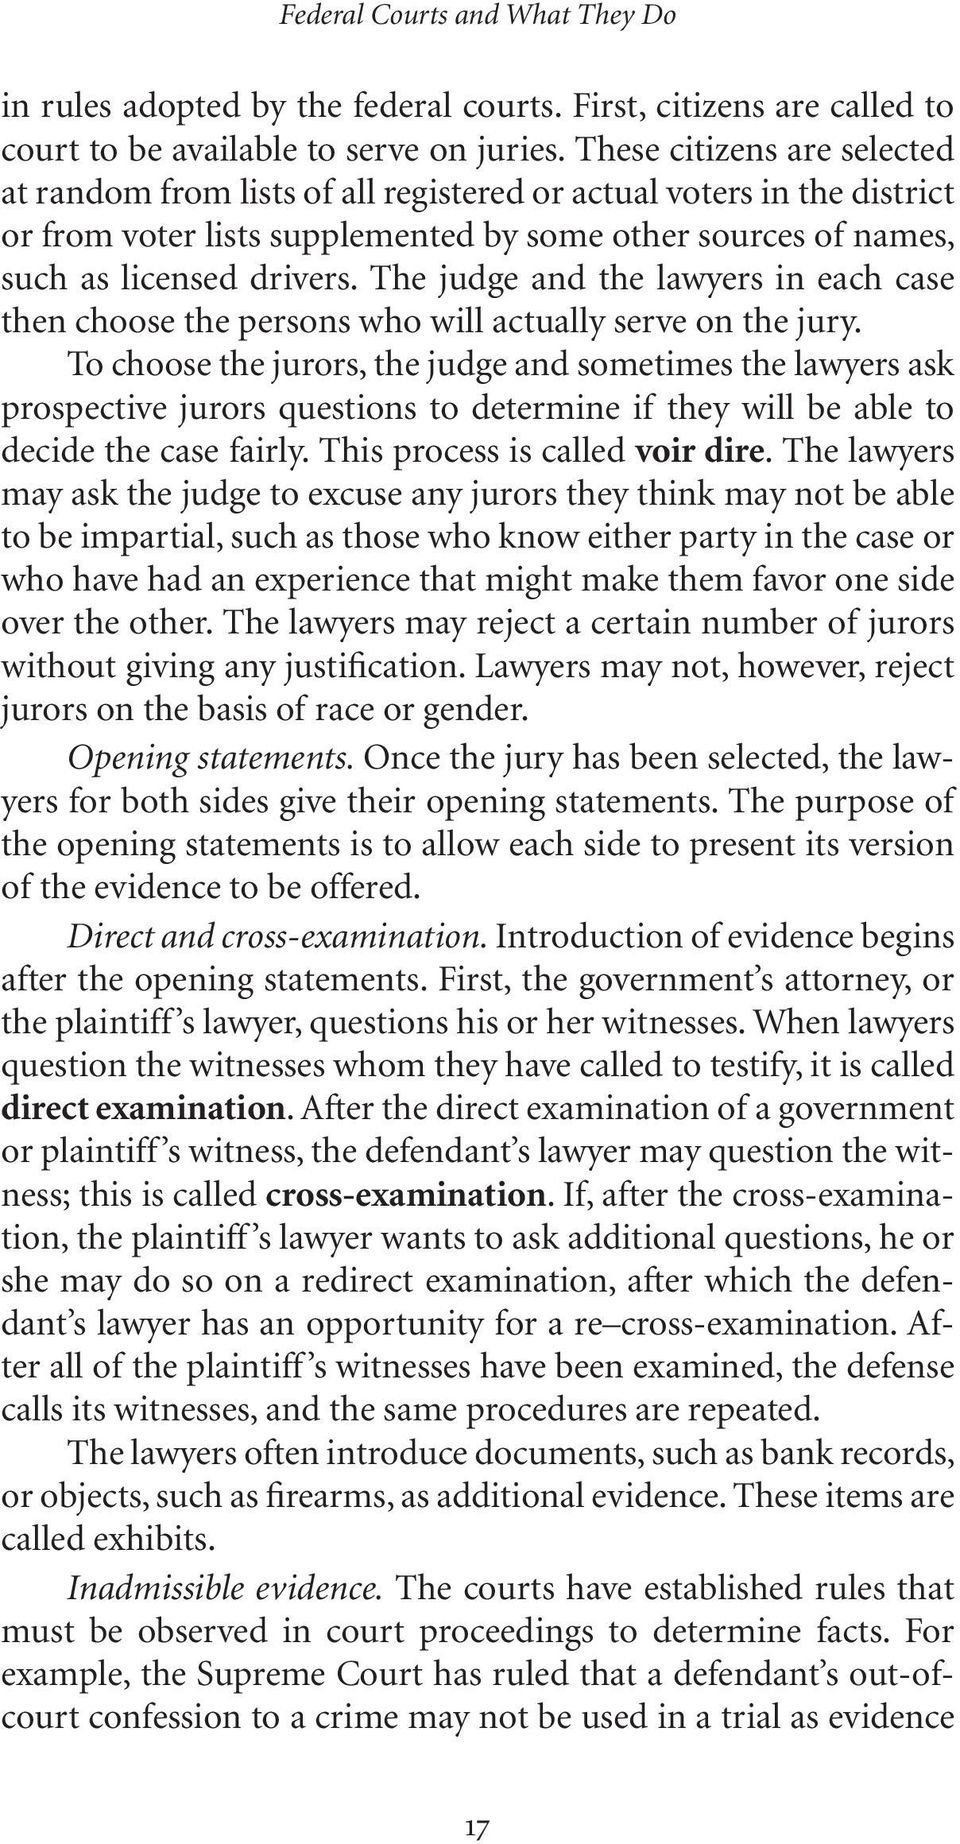 The judge and the lawyers in each case then choose the persons who will actually serve on the jury.